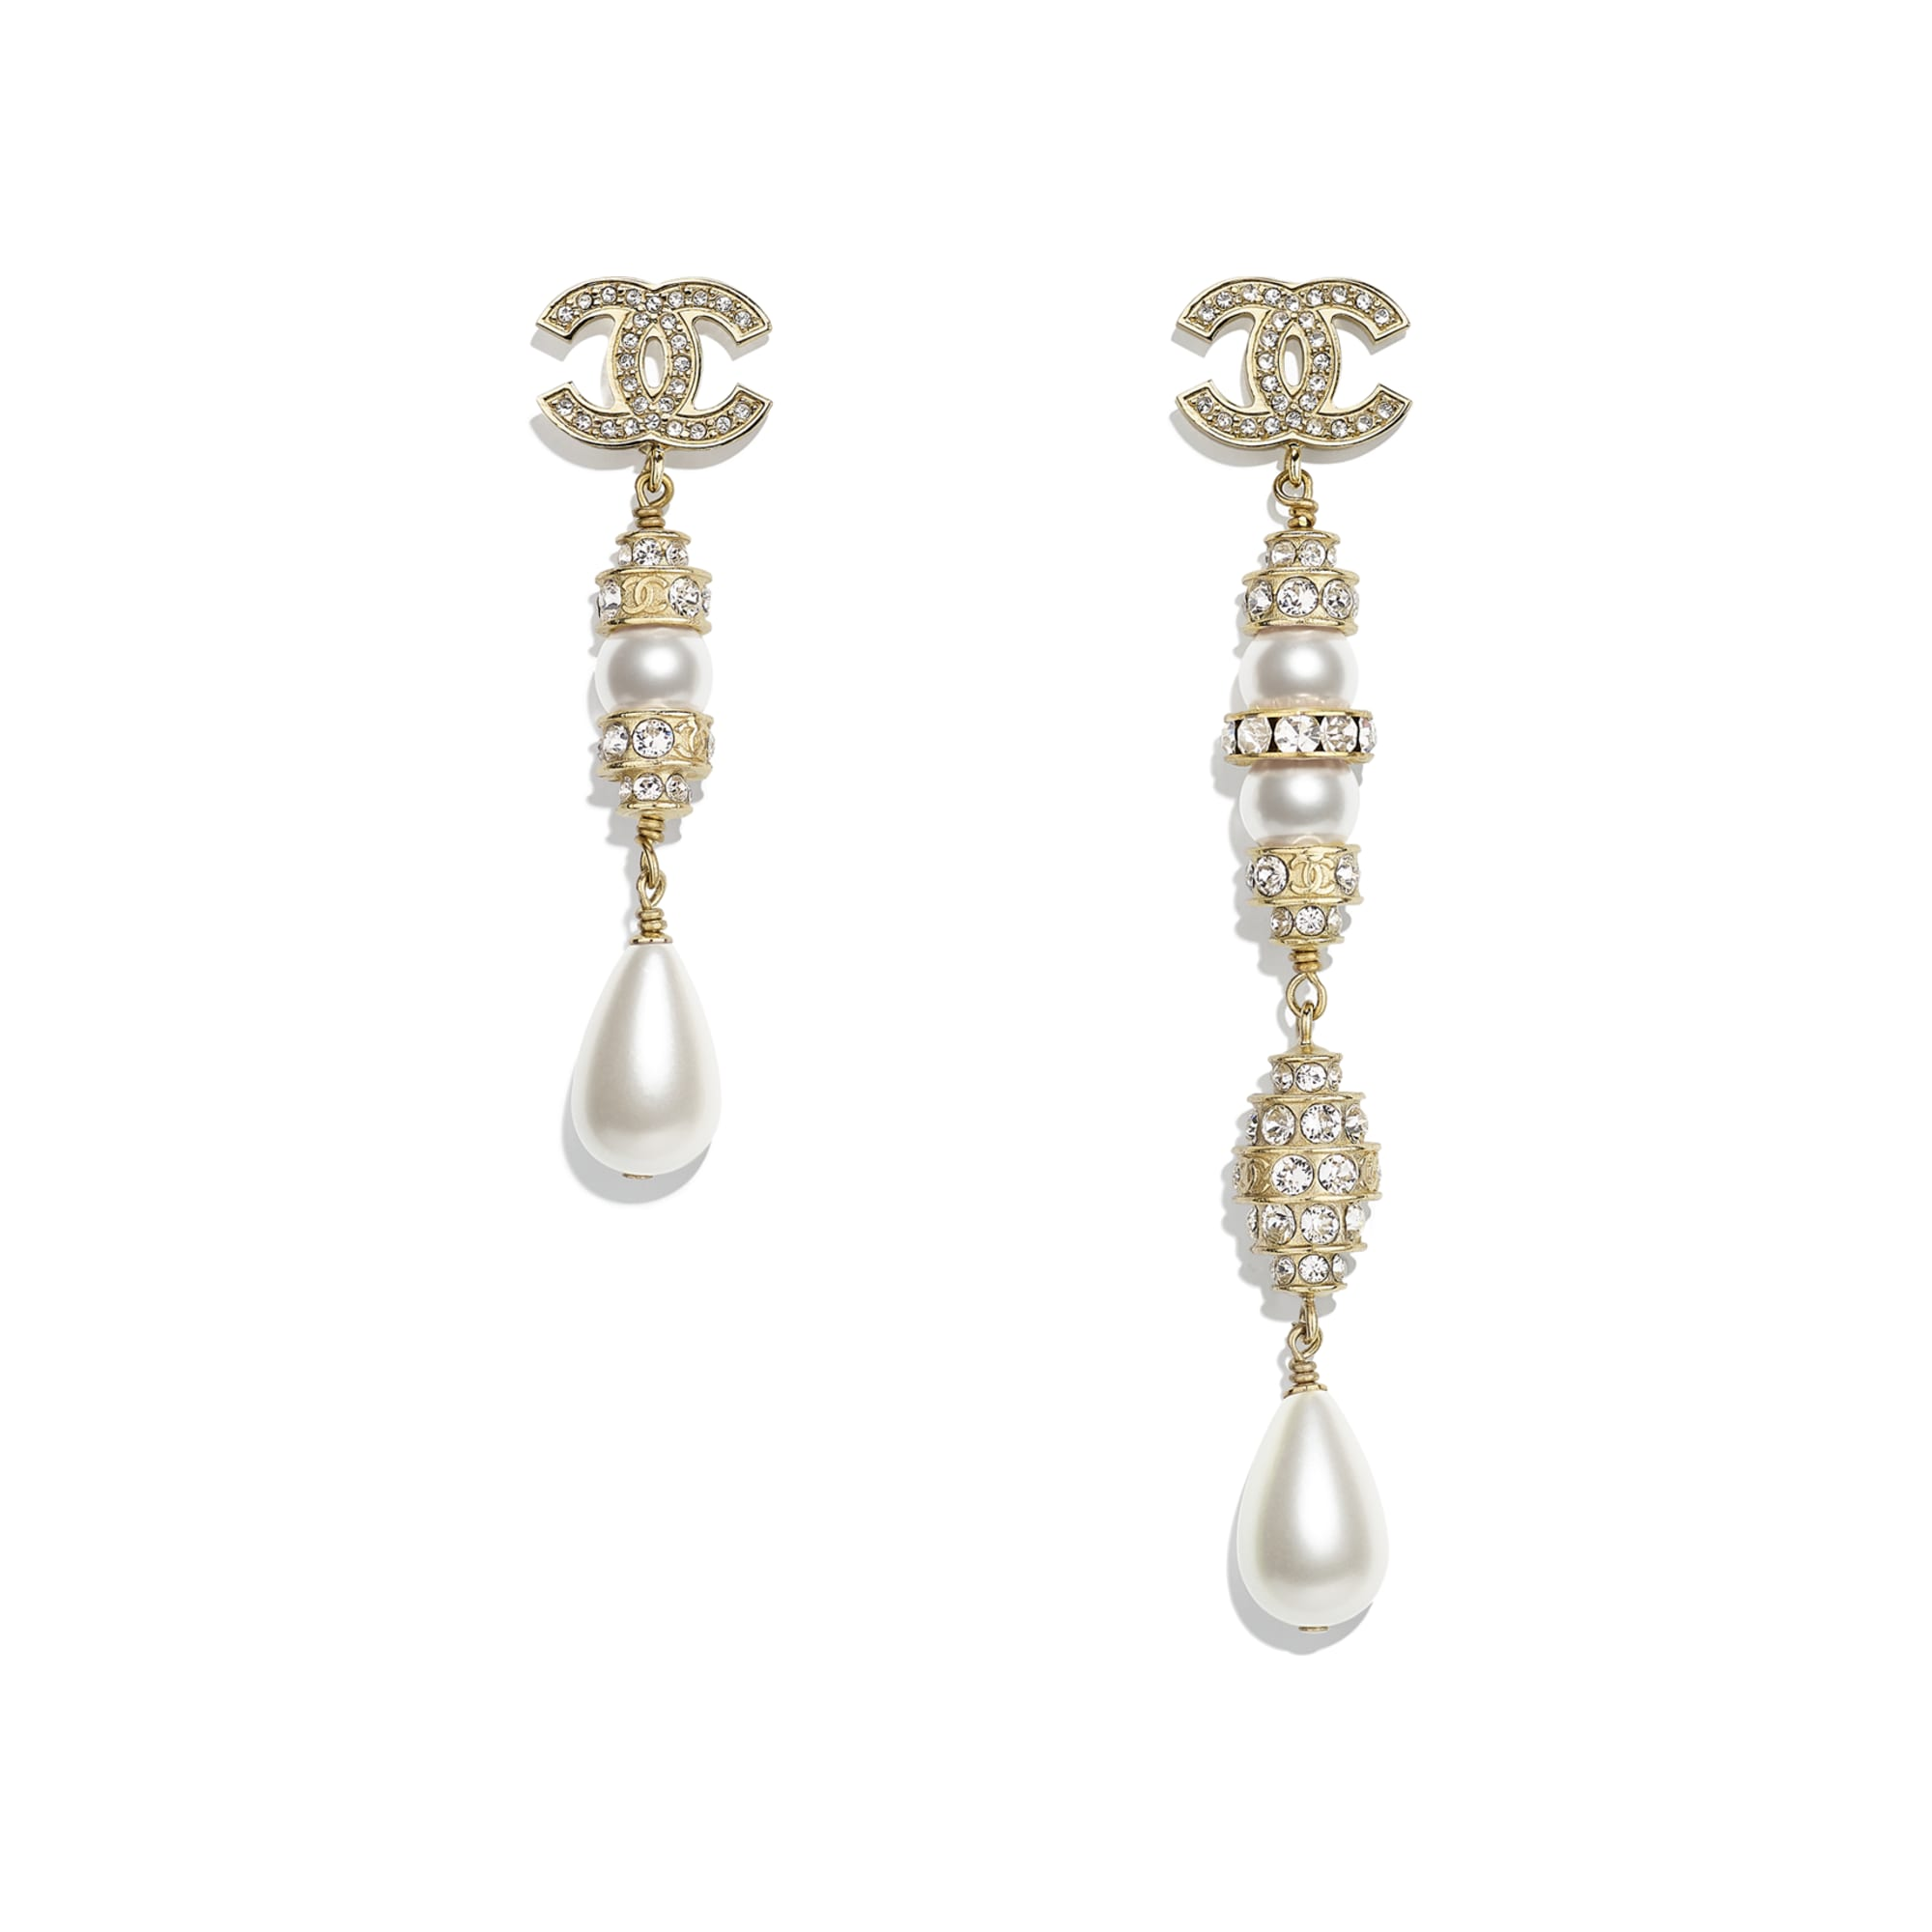 Earrings - Gold, Pearly White & Crystal - Metal, Glass Pearls, Imitation Pearls & Diamanté - CHANEL - Default view - see standard sized version